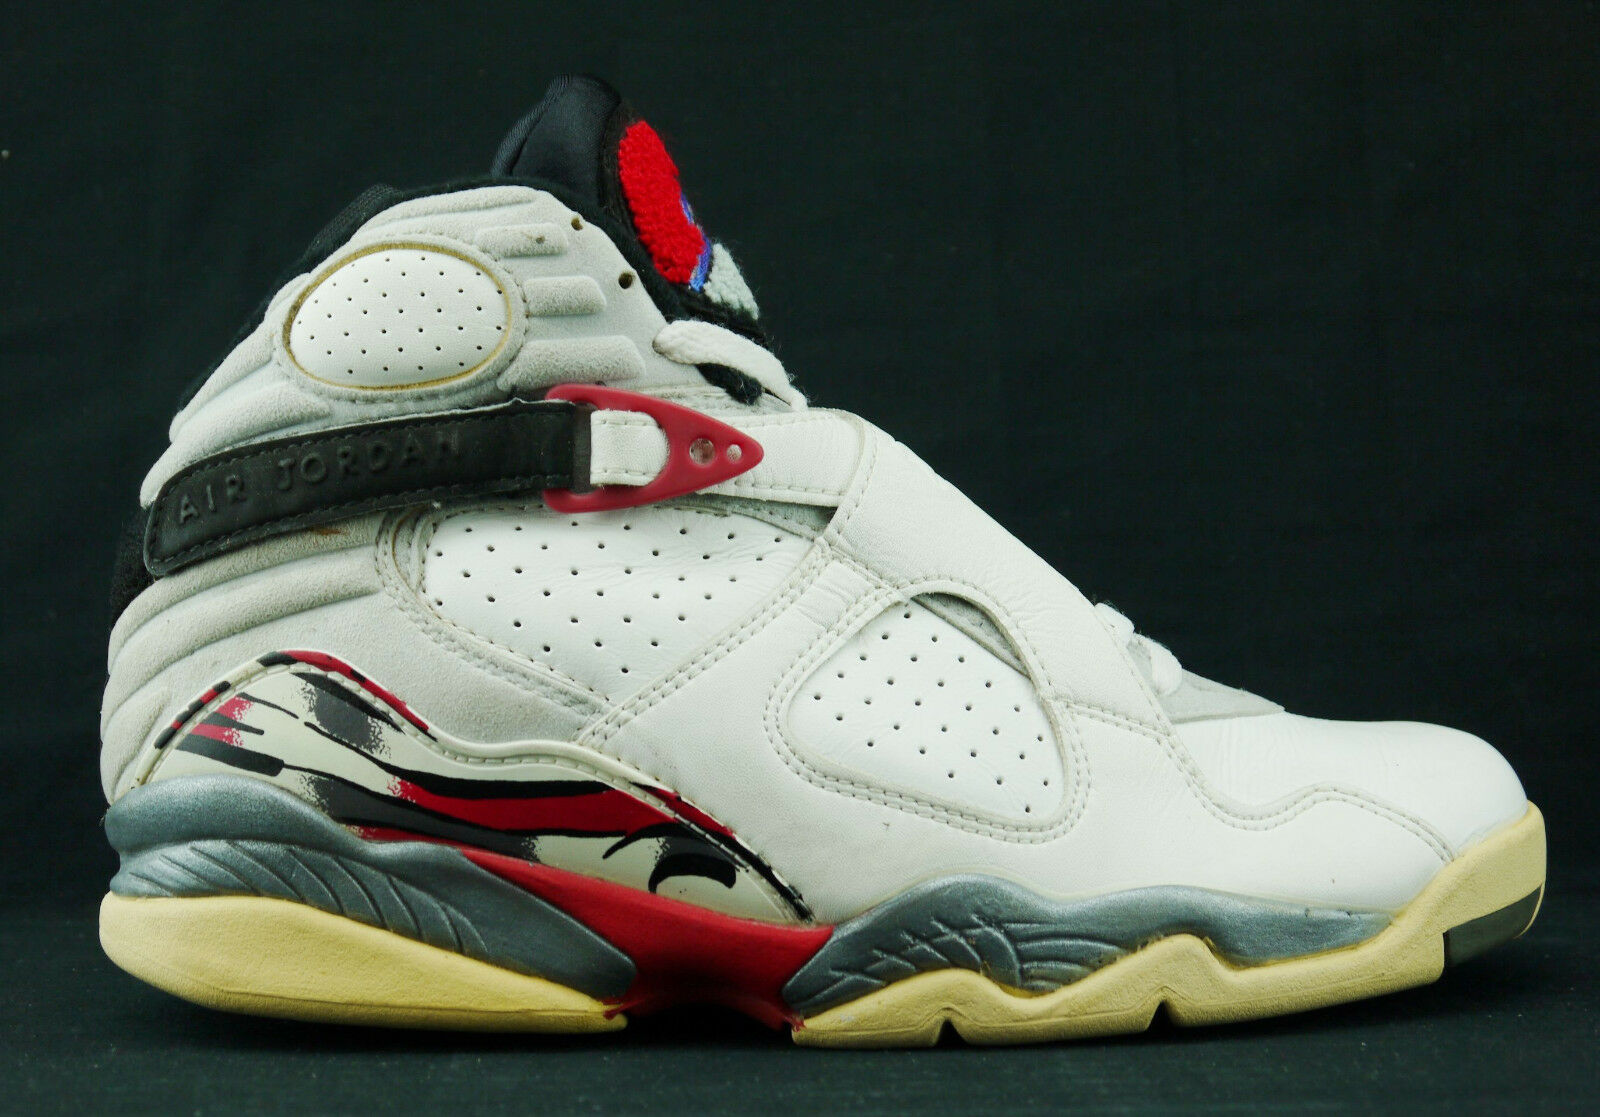 Nike Air Jordan 8 VIII OG Vintage Bugs Bunny 130169 100 sz 8.5 One shoe only 003